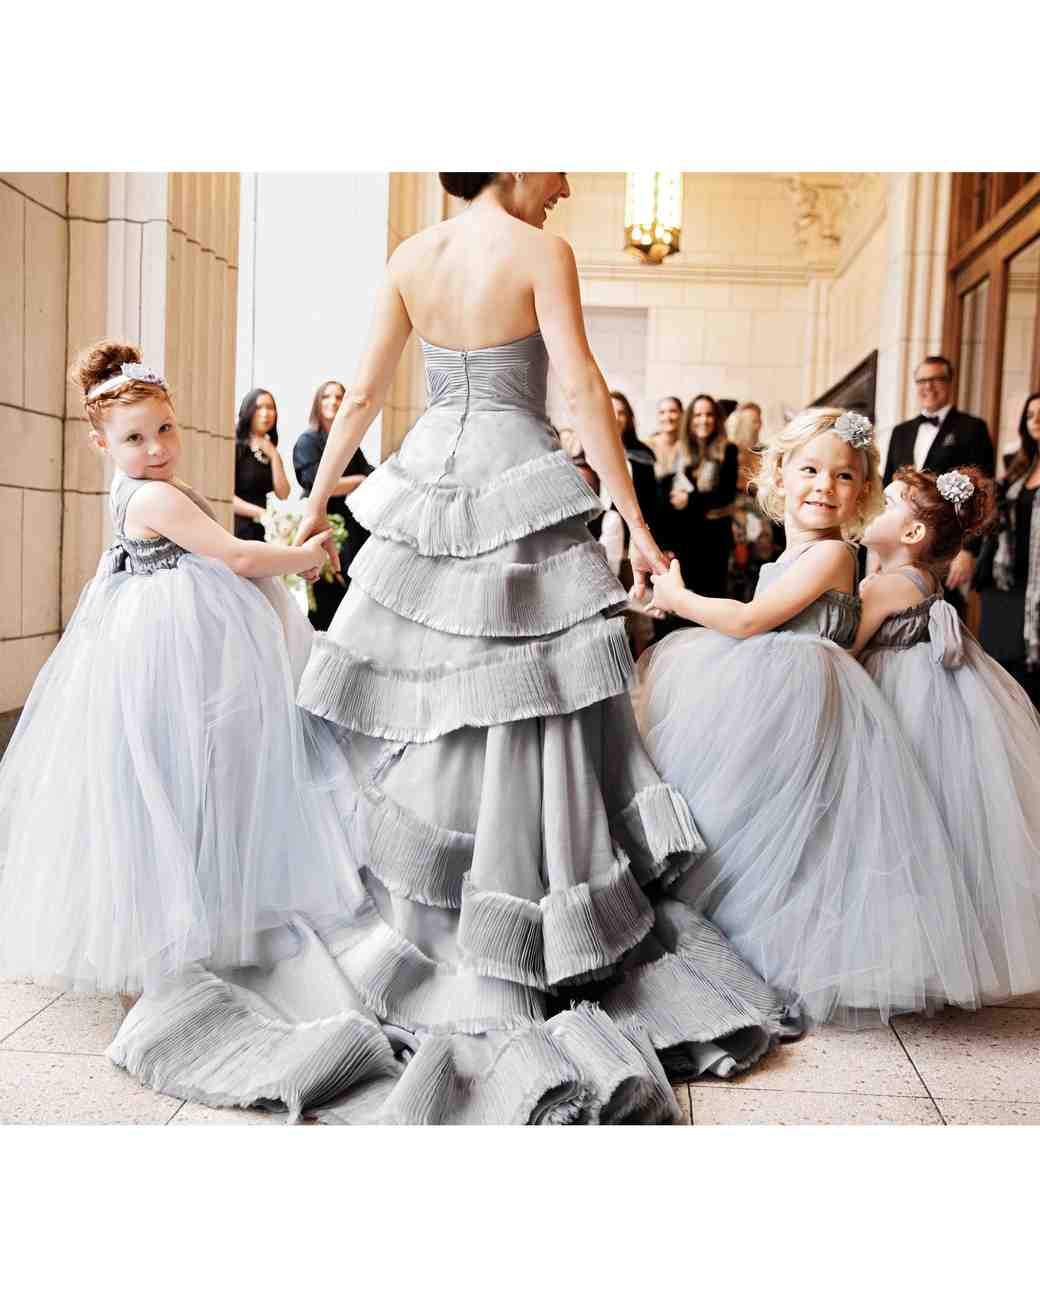 Flower Girls Wearing Silver Dresses